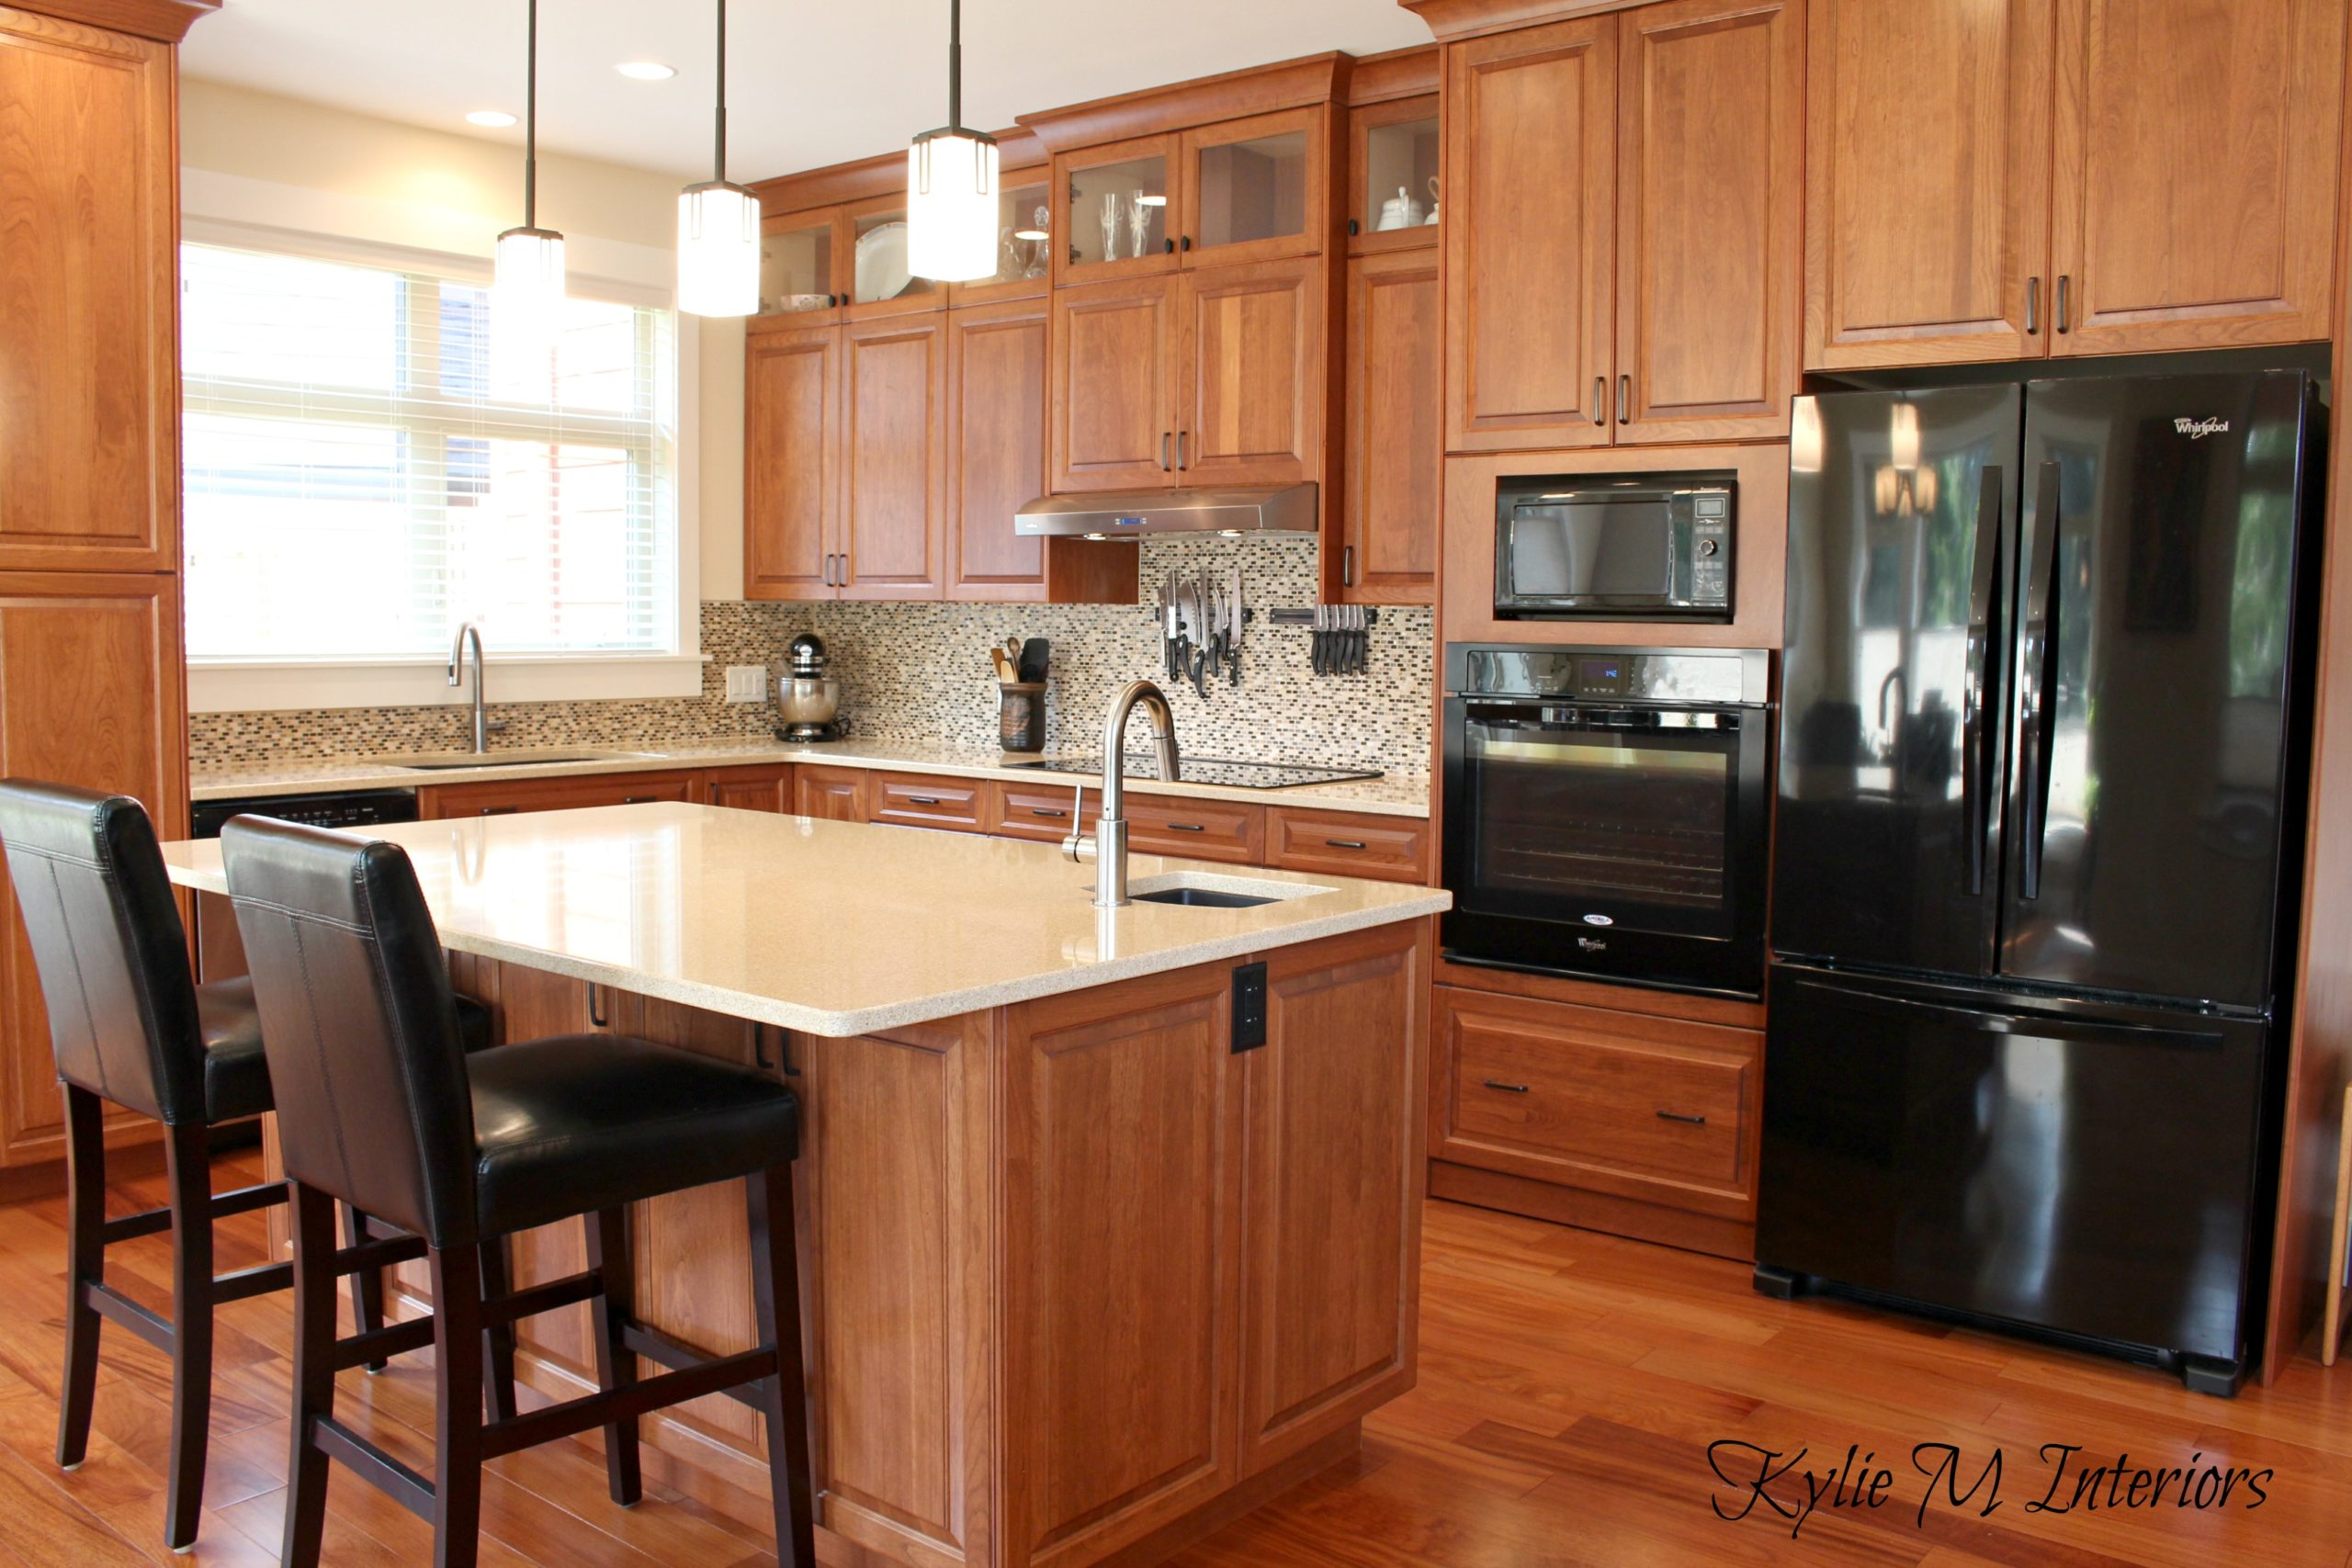 Cherry kitchen cabinets in modern transitional kitchen for Kitchen cabinets with black appliances